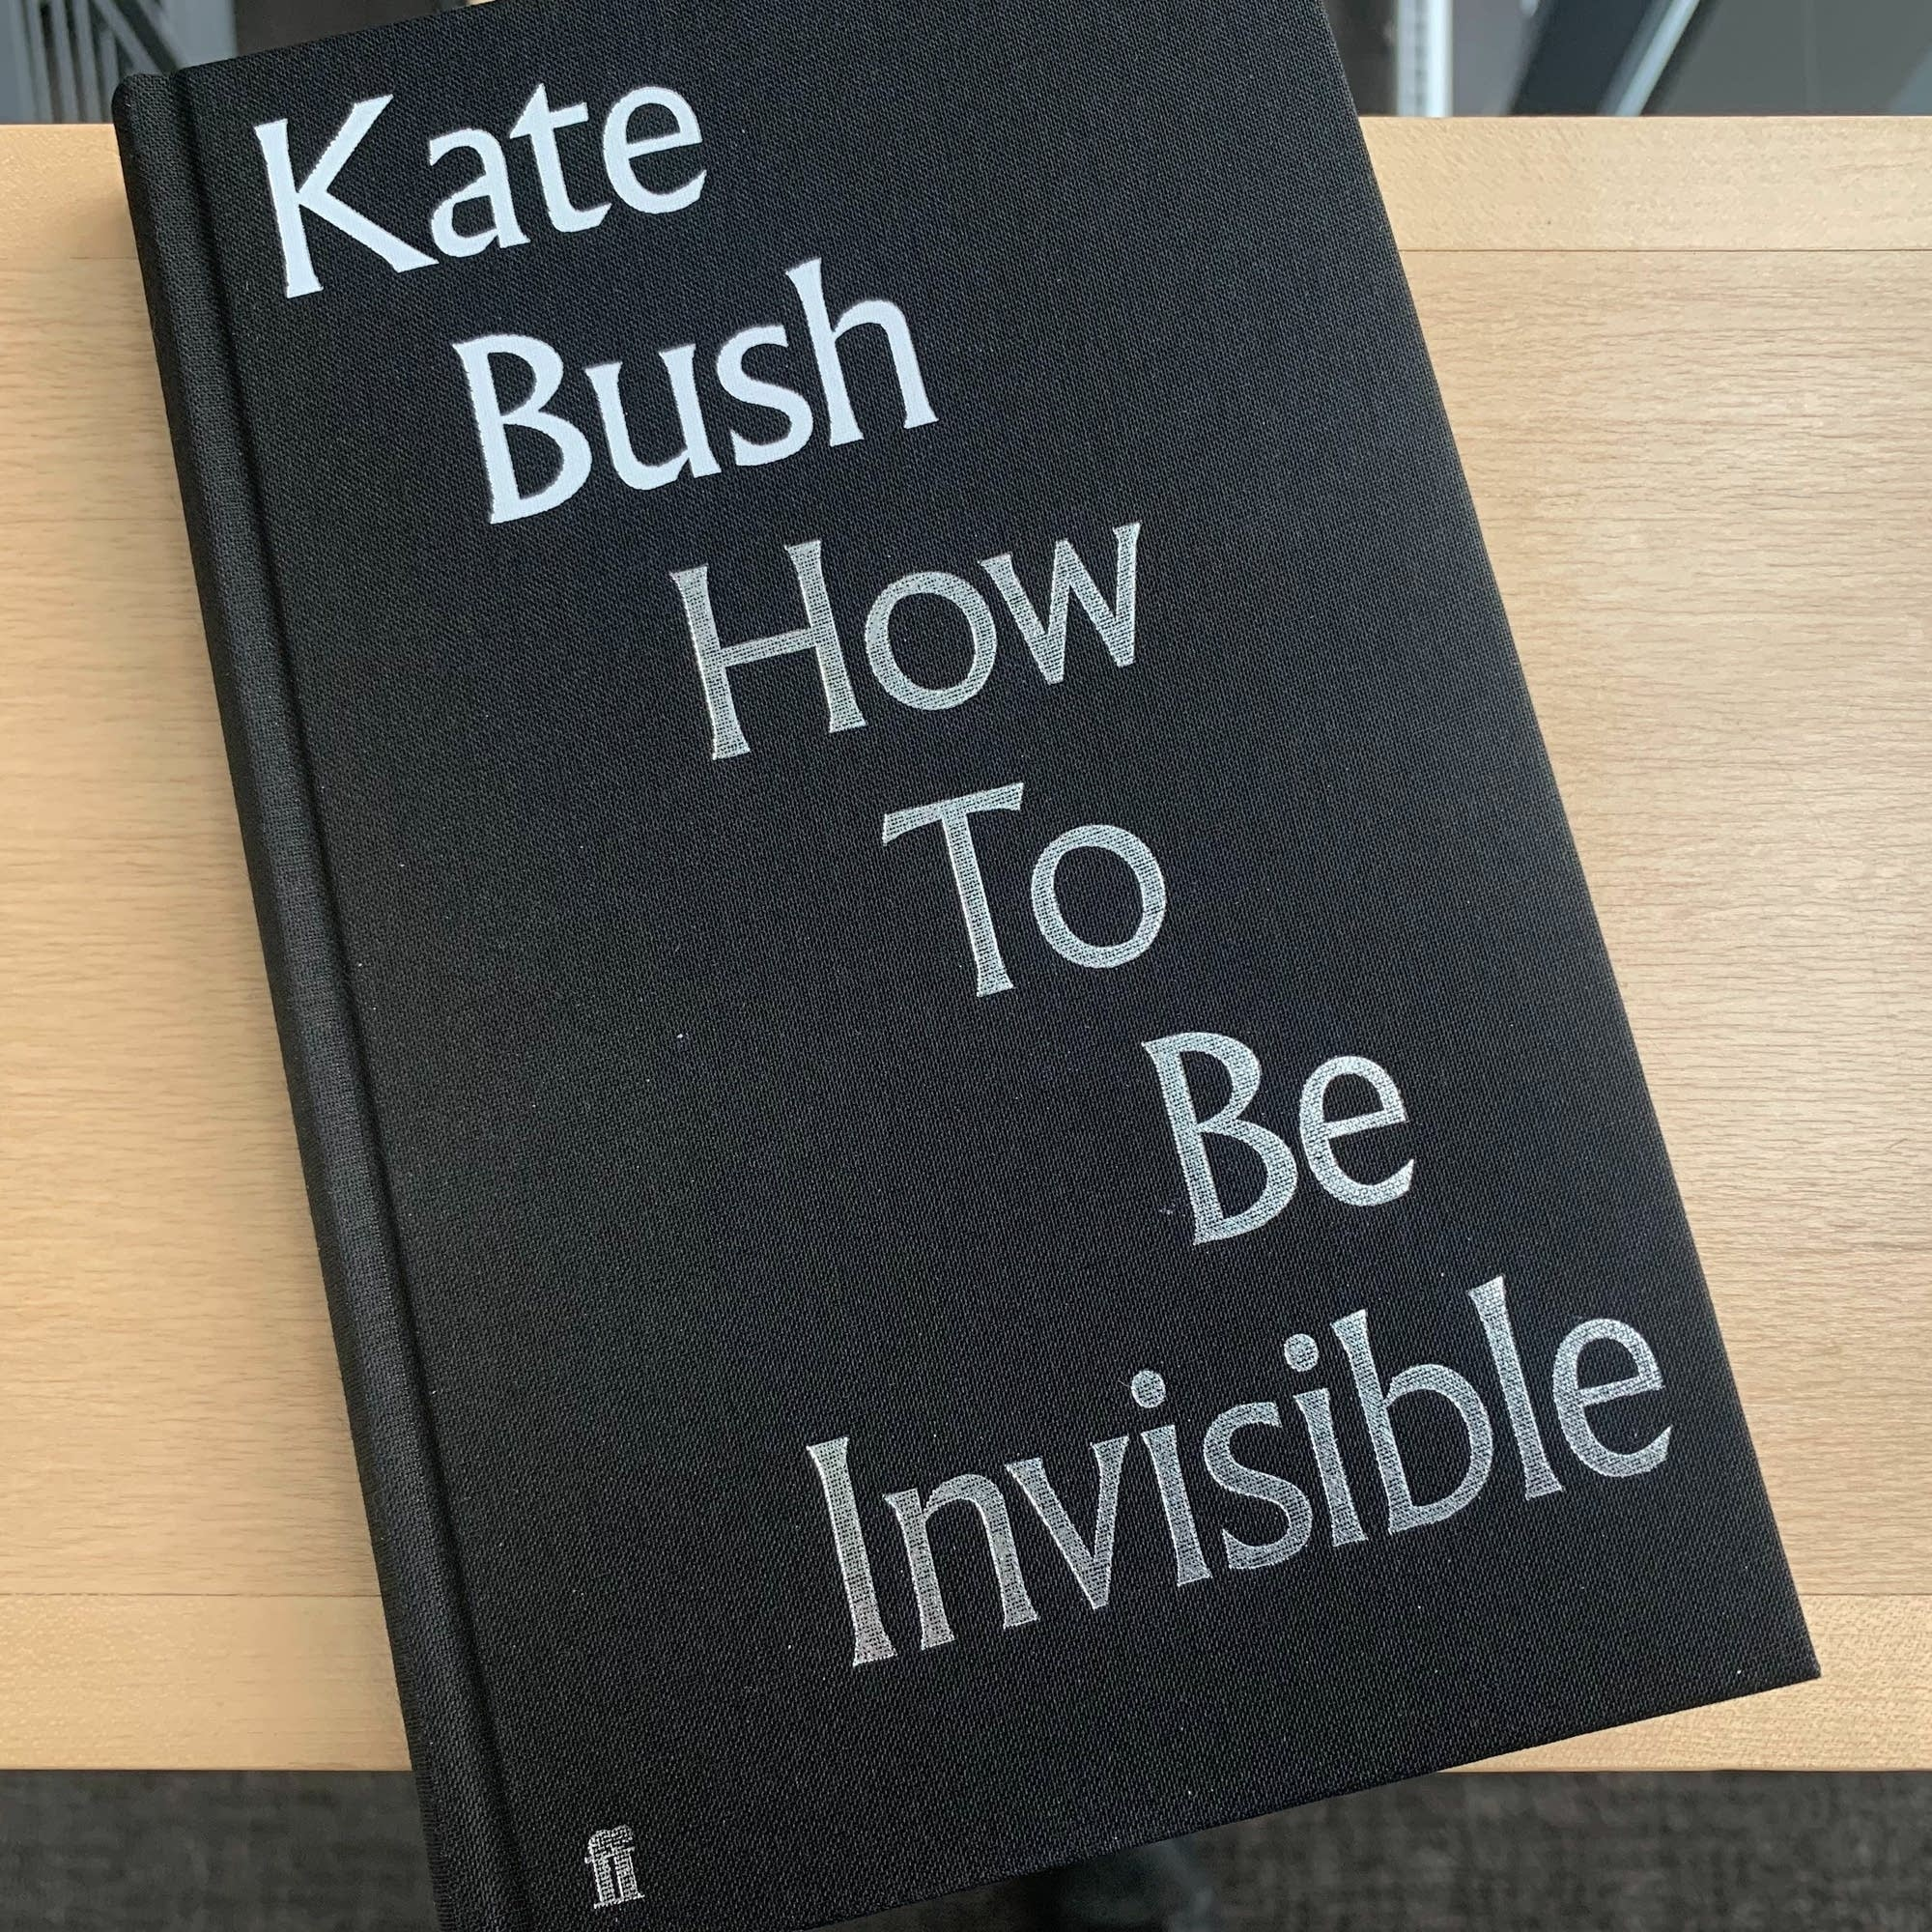 Kate Bush's 'How To Be Invisible.'